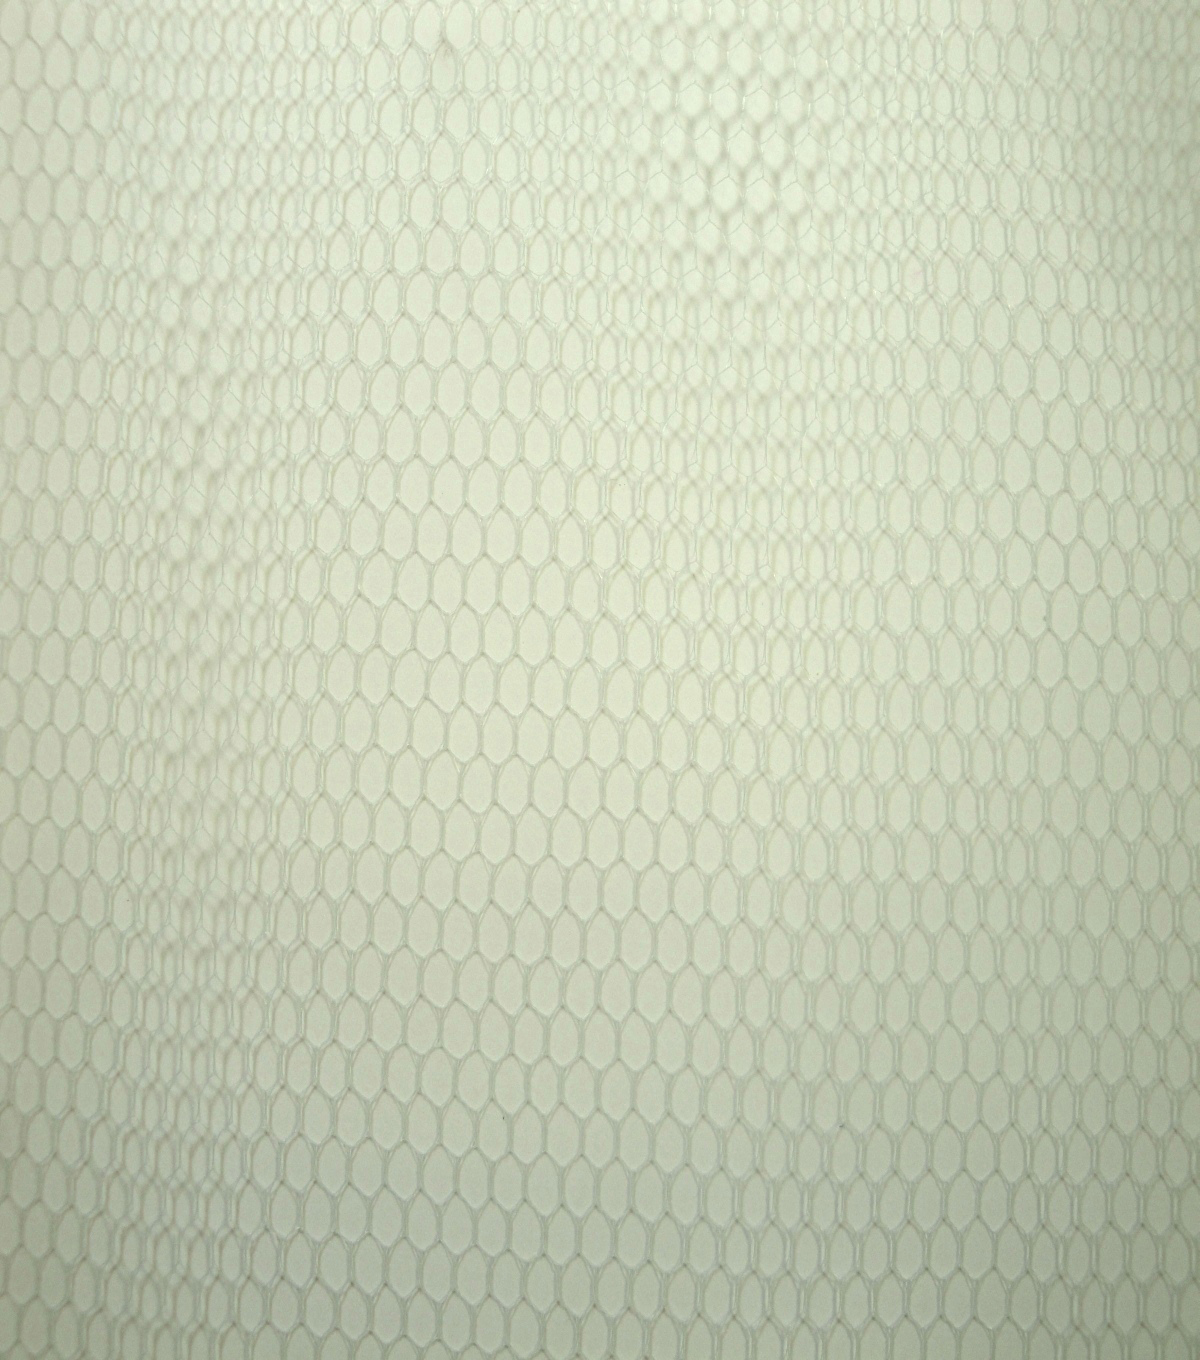 Nettingmatte Net Fabric 72\u0027\u0027-Gray Violet